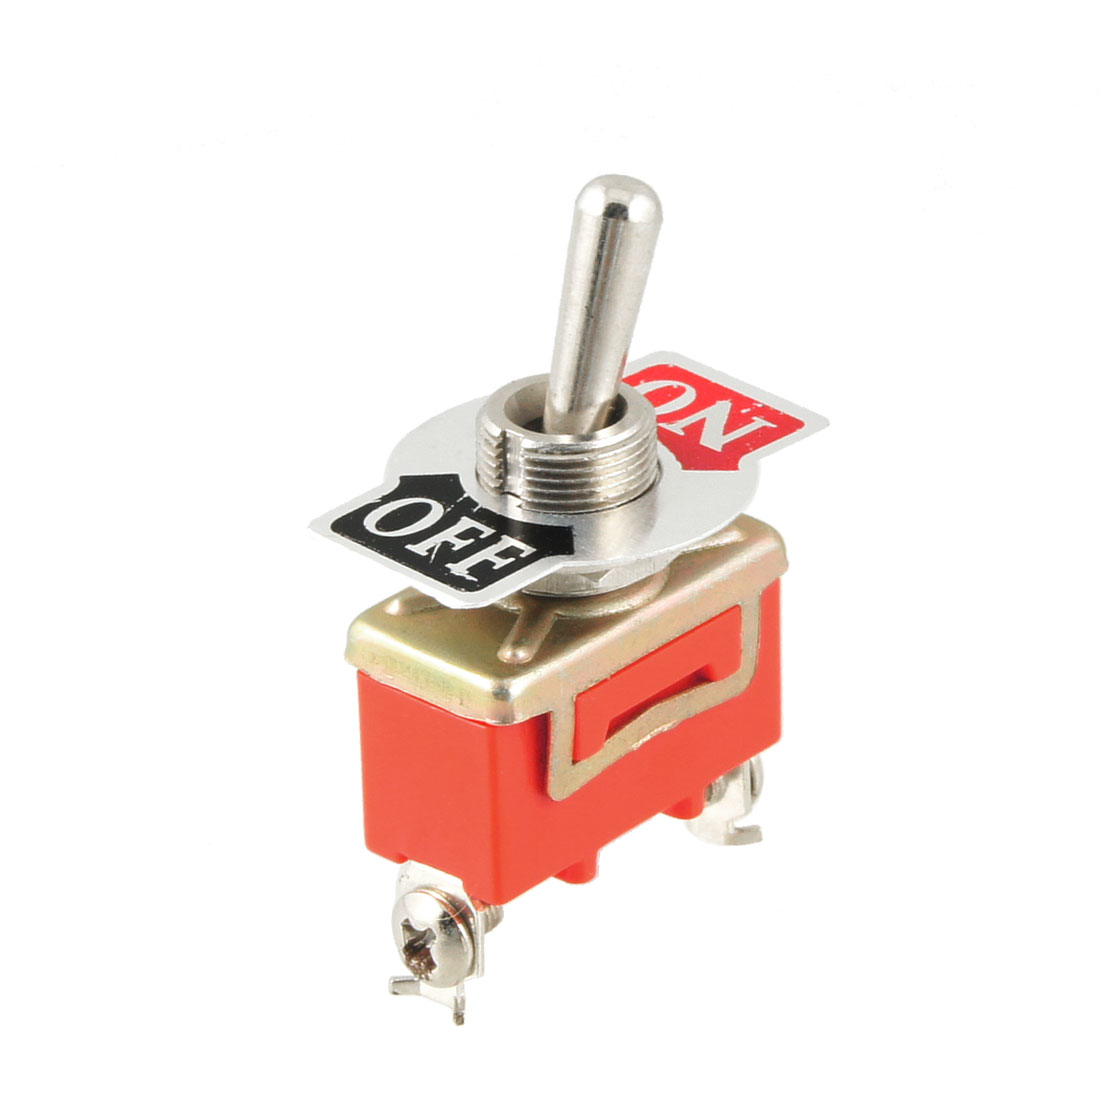 AC 250V 15A ON/OFF 2 Position SPST 2 Screw Terminals Toggle Switch